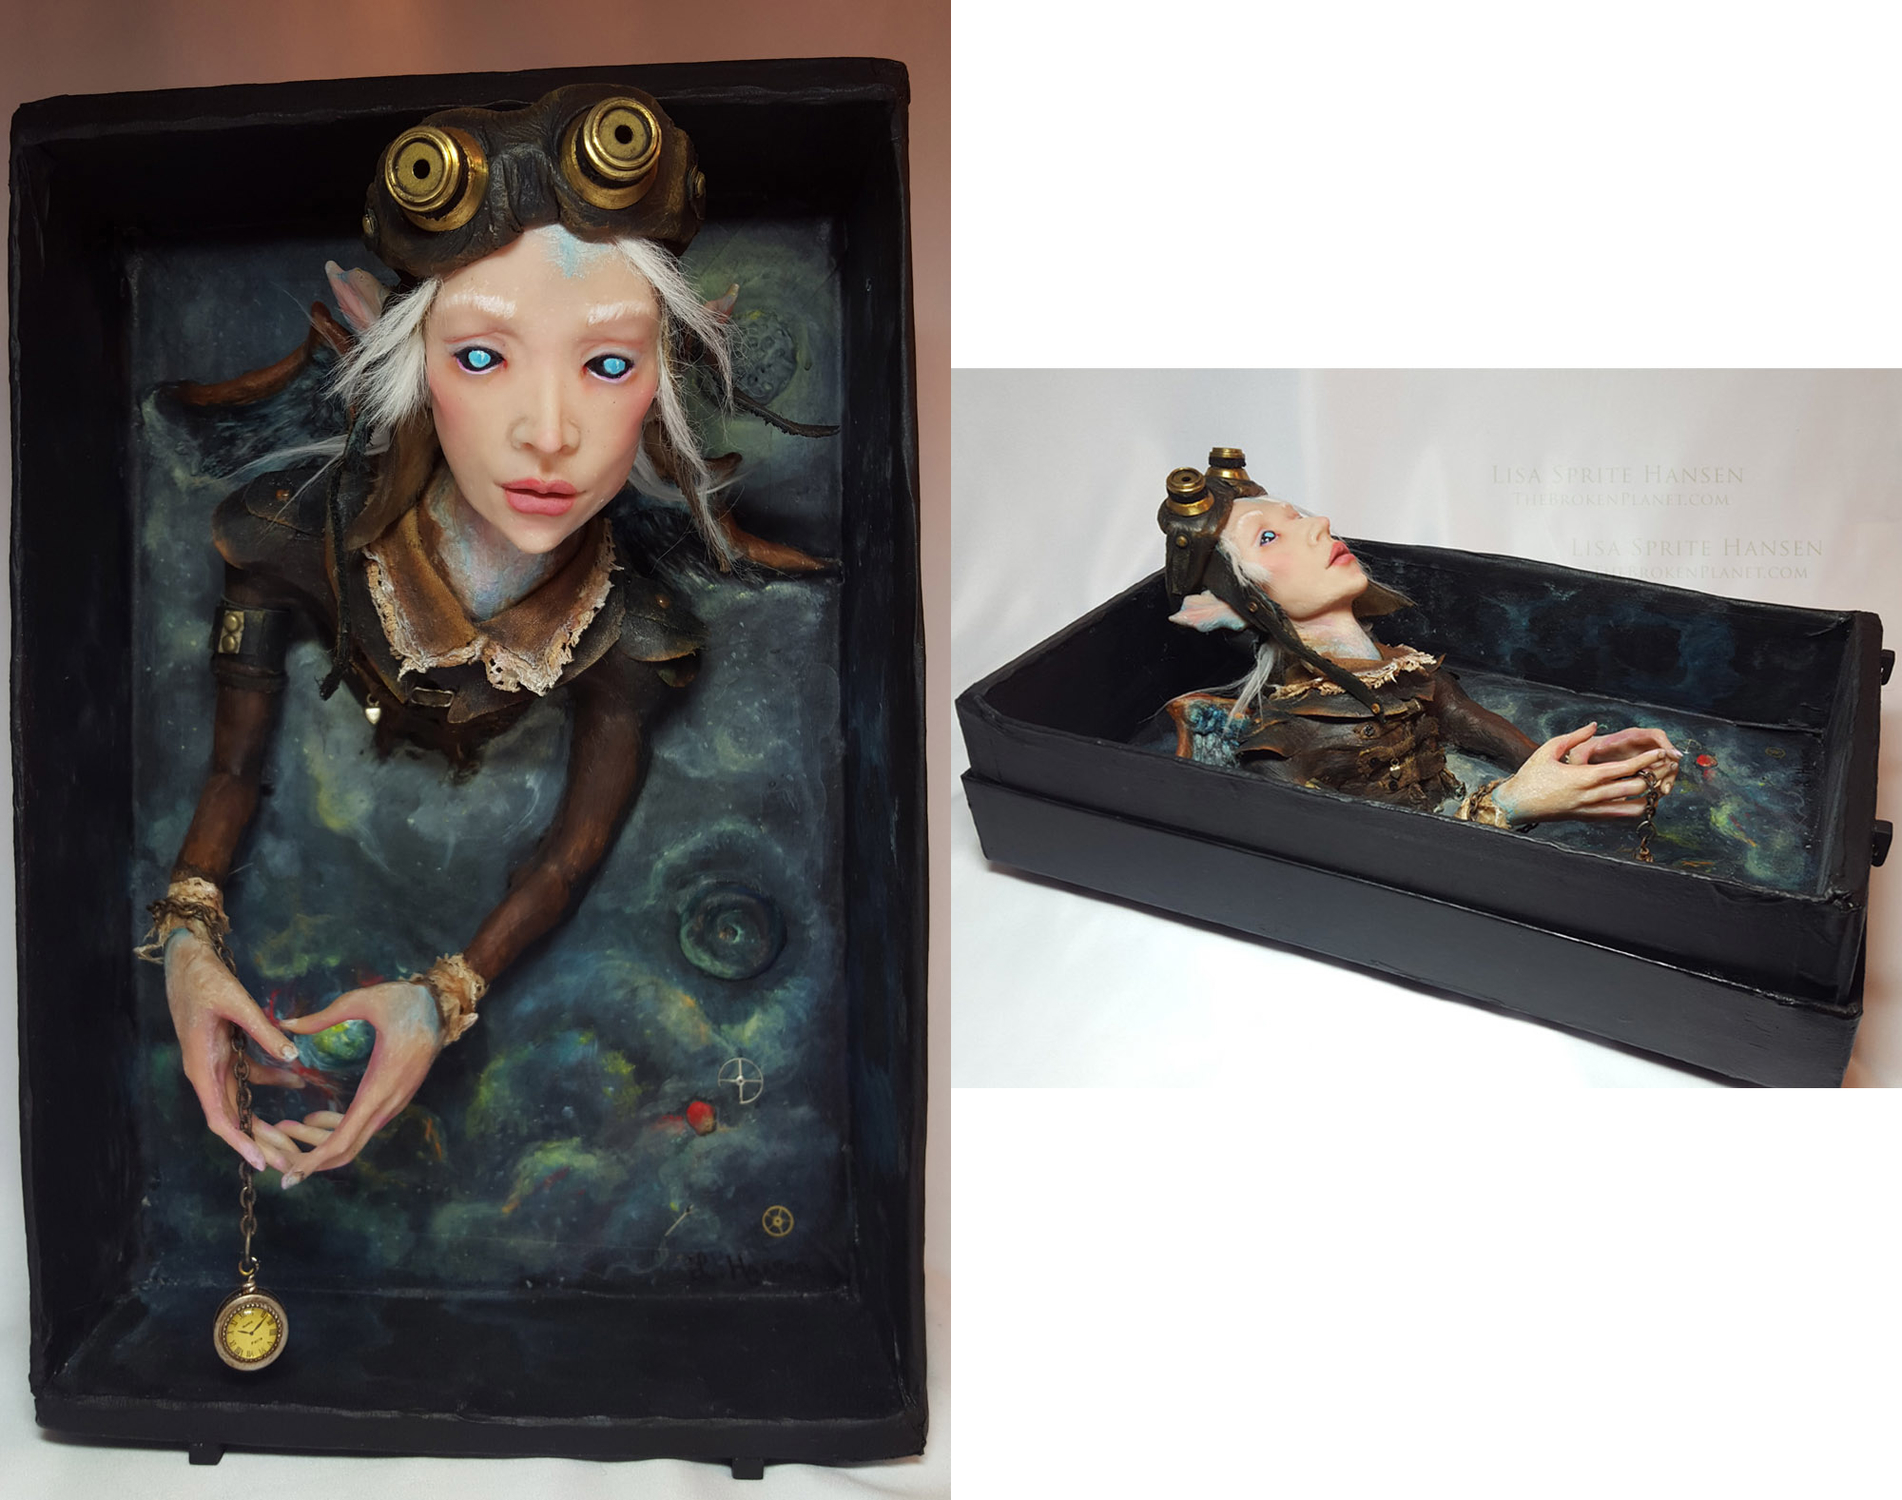 Sarum  - Shadowbox Artwork by Lisa Sprite Hansen